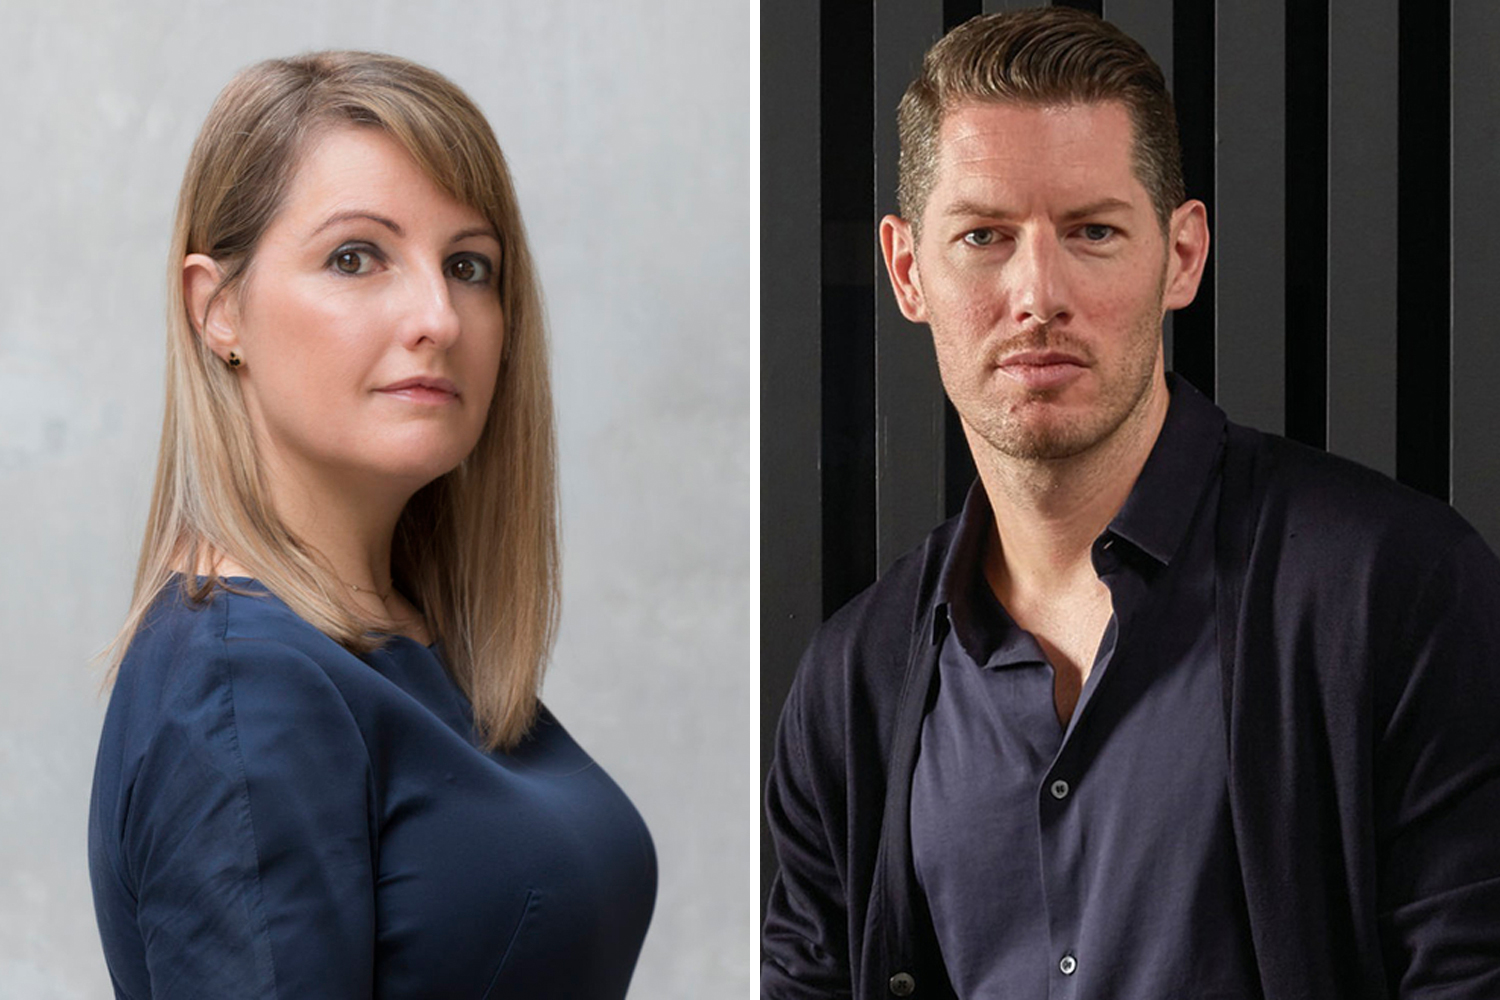 Binchy and Binchy and ANARCHITECT founders welcome news of Dubai architecture festival